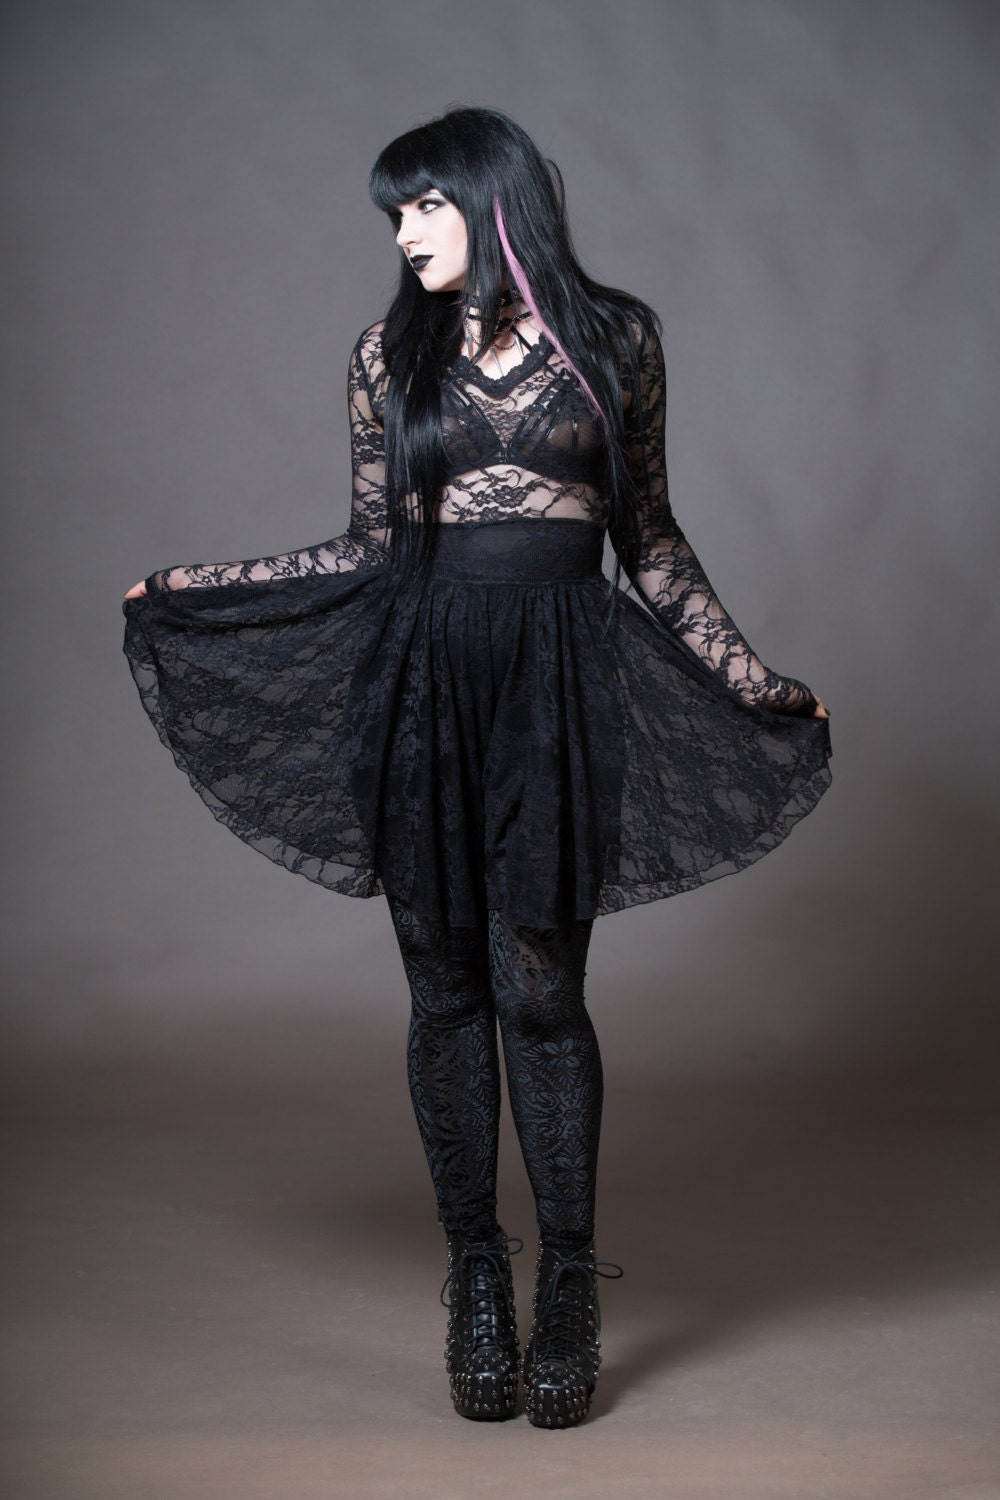 sheer lace dress goth stretchy vneck gothic witchy clothing